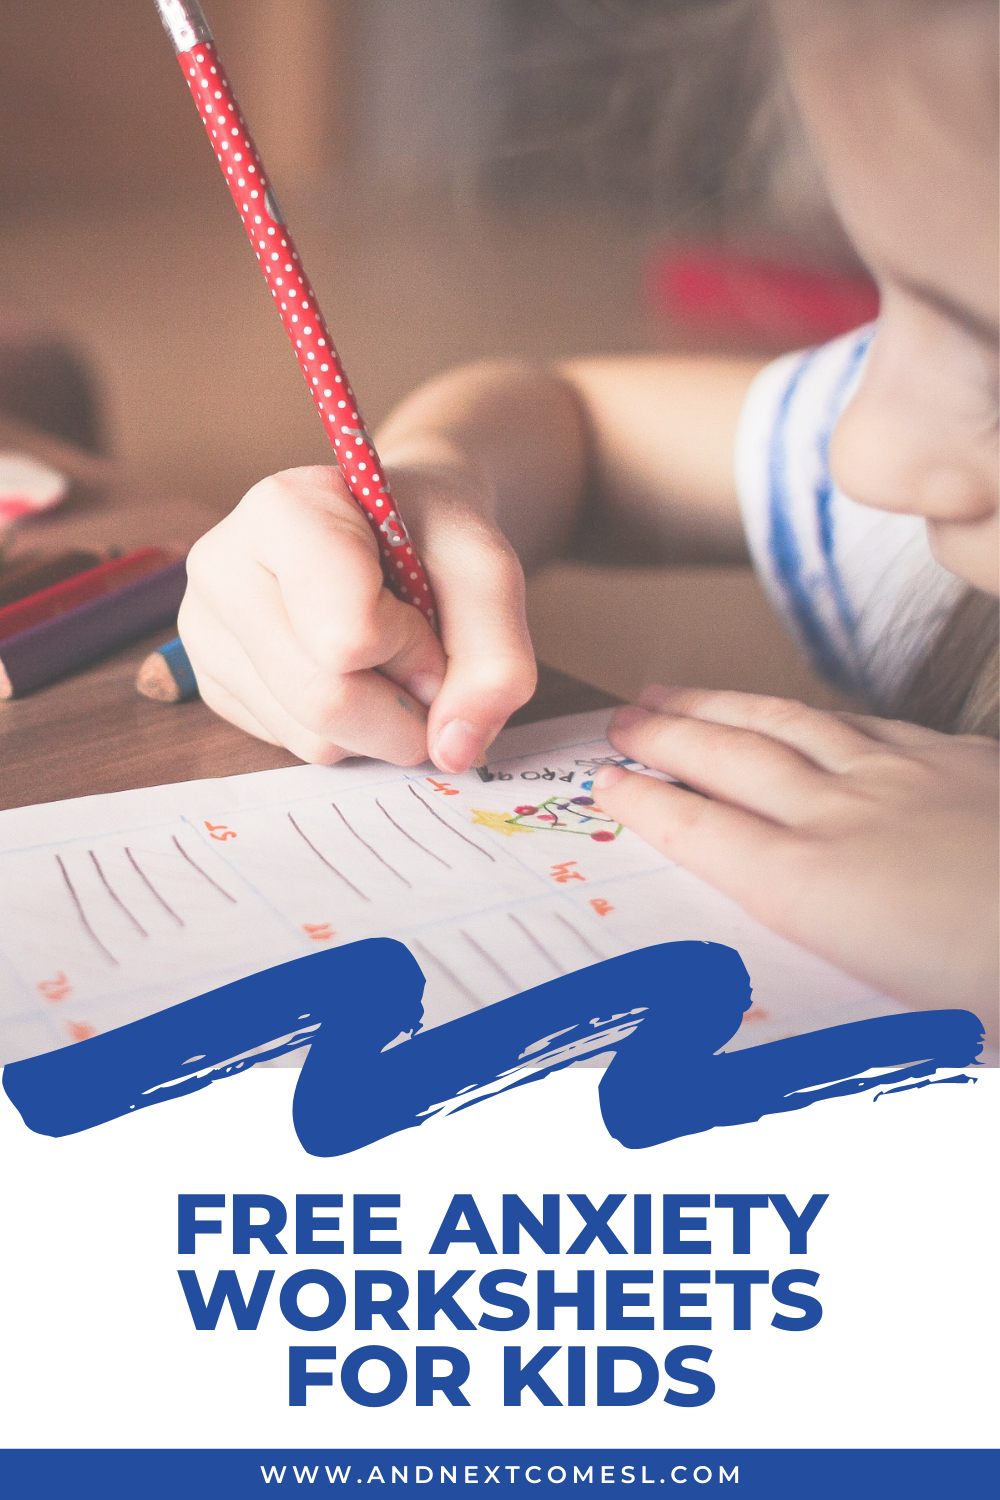 Free printable worry worksheets and anxiety worksheets for kids